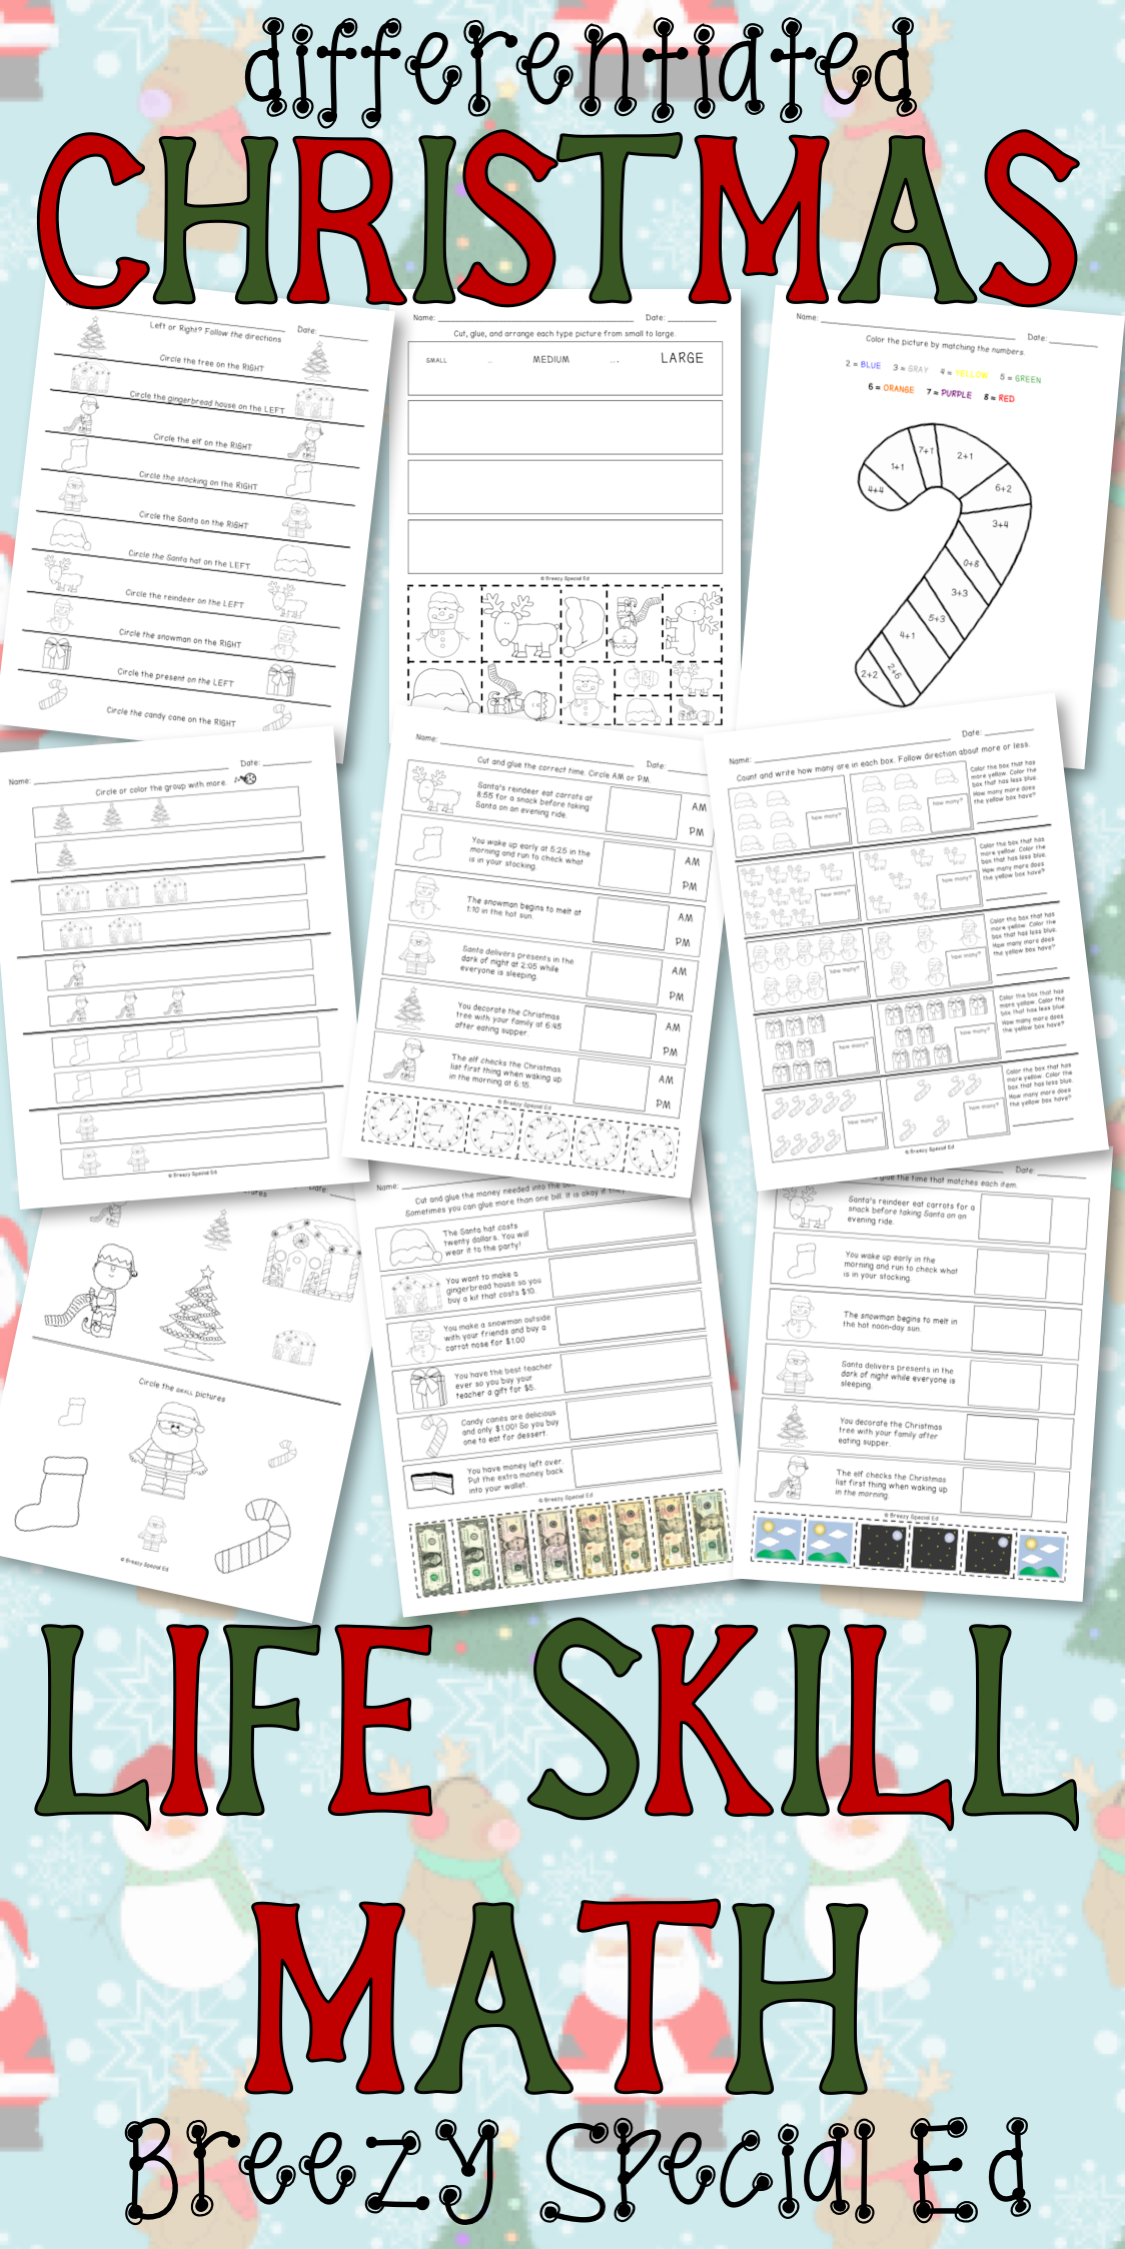 Tons Of Functional Math Worksheets All With A Christmas Theme   Tons Of Functional Math Worksheets All With A Christmas Theme  Levels  Included